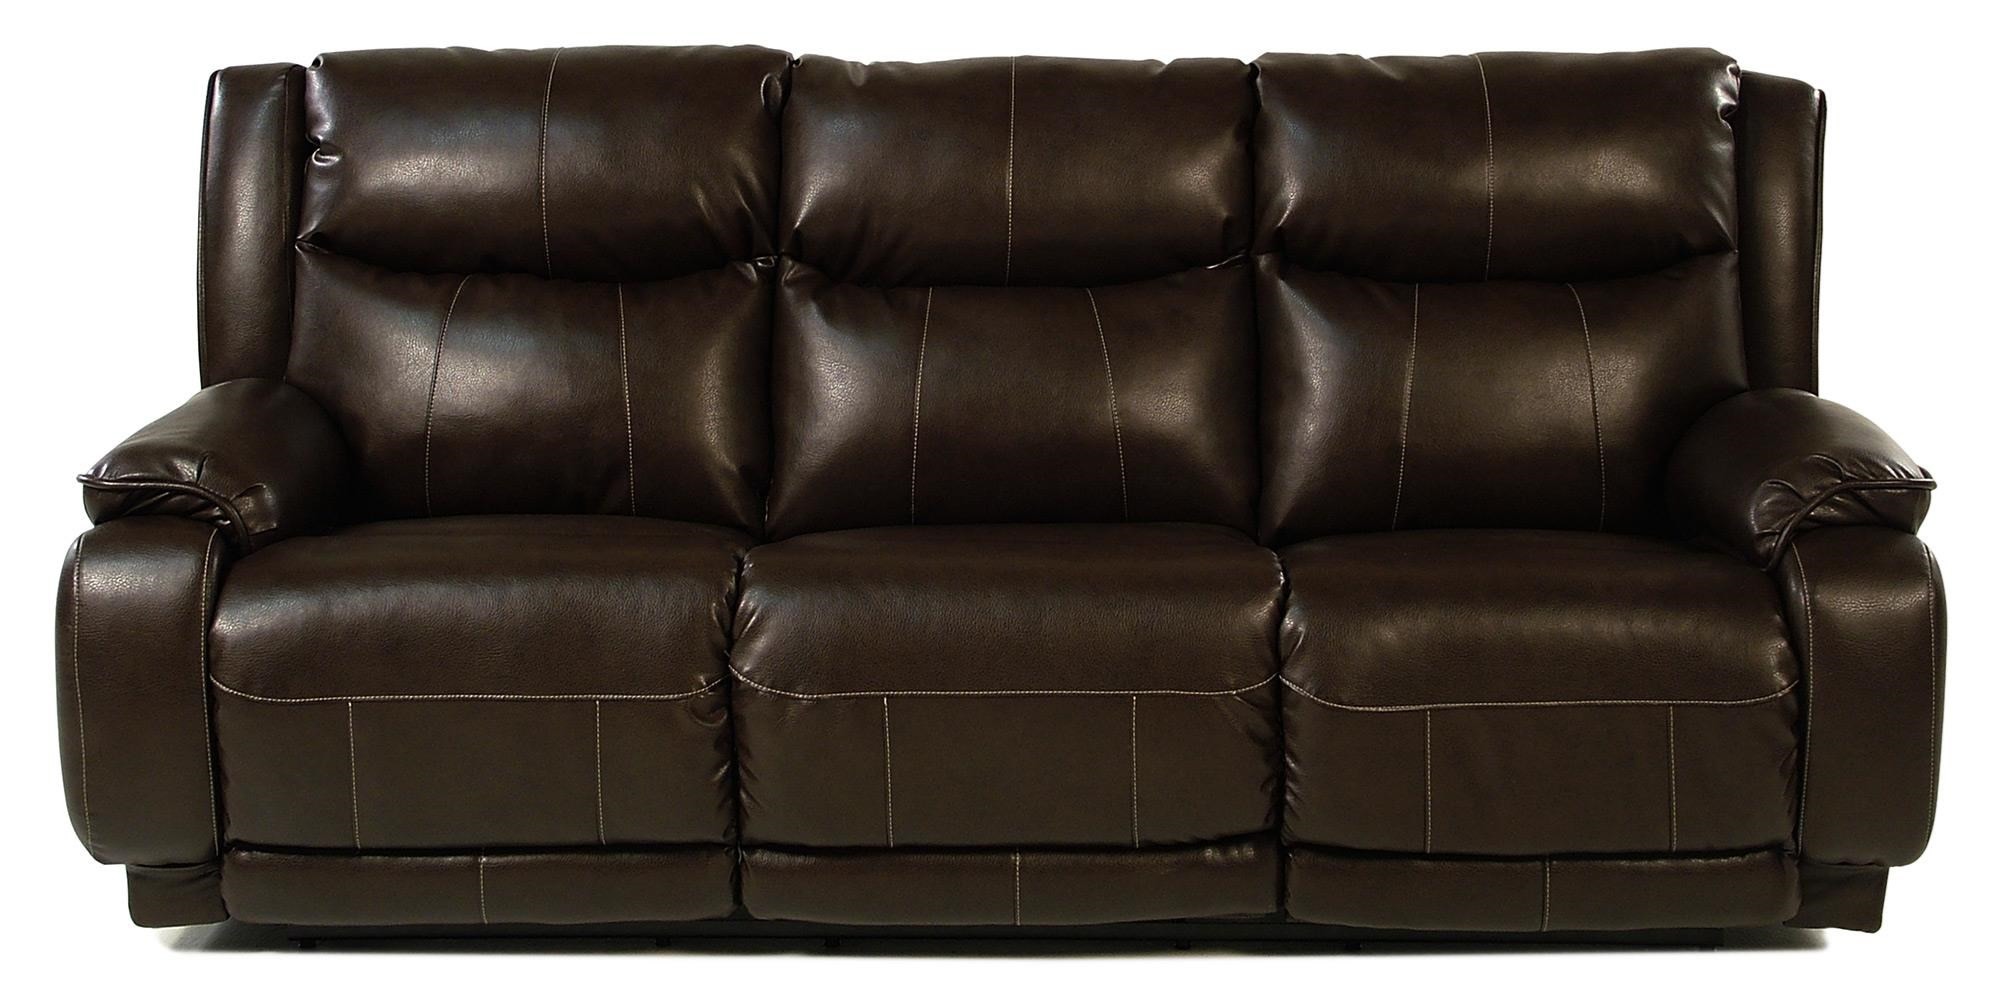 Design to Recline Power-Max Triple Reclining Sofa - Item Number: 875-35